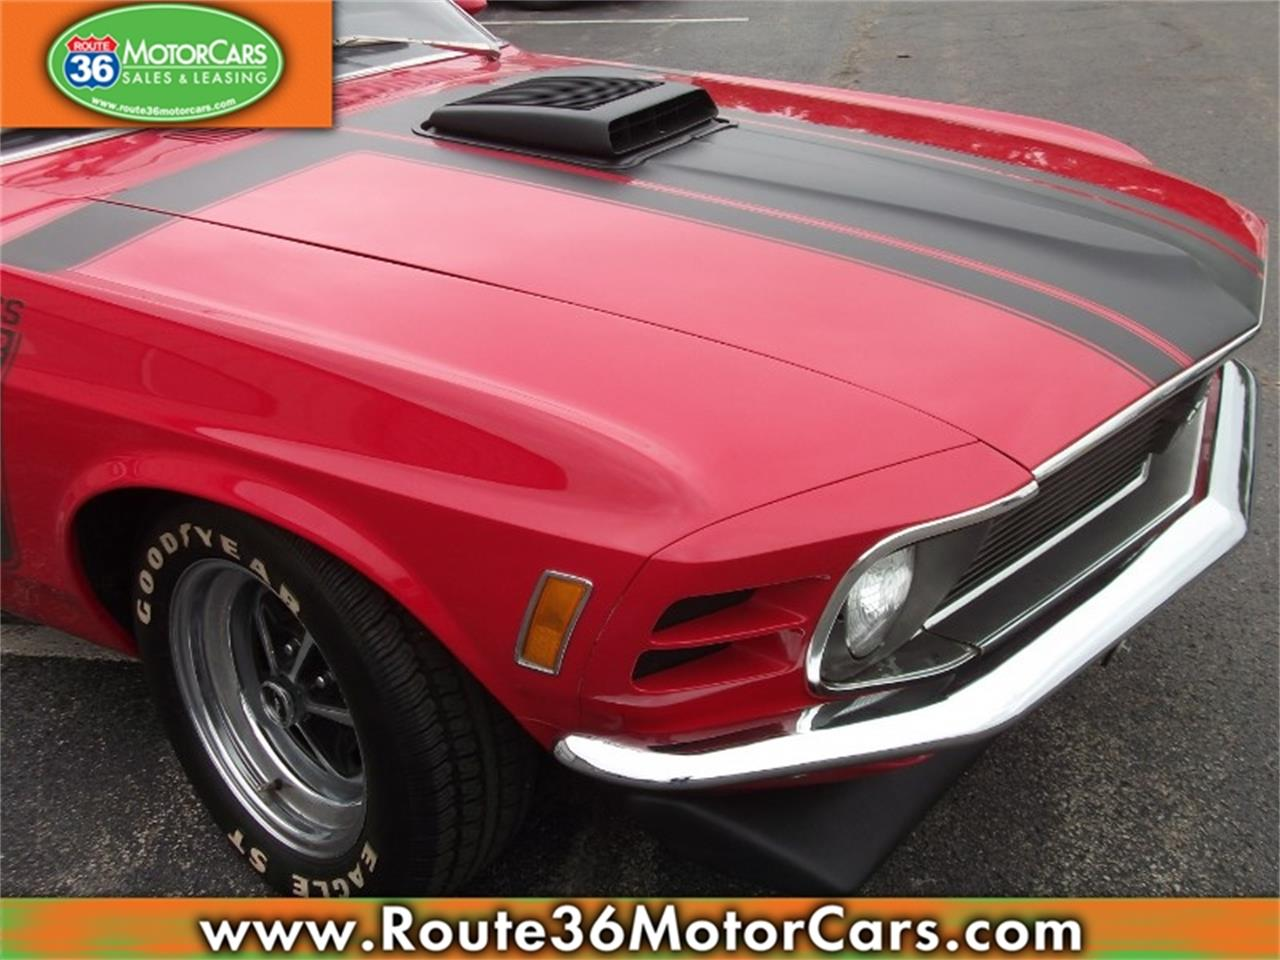 Large picture of 1970 mustang located in ohio pbl3